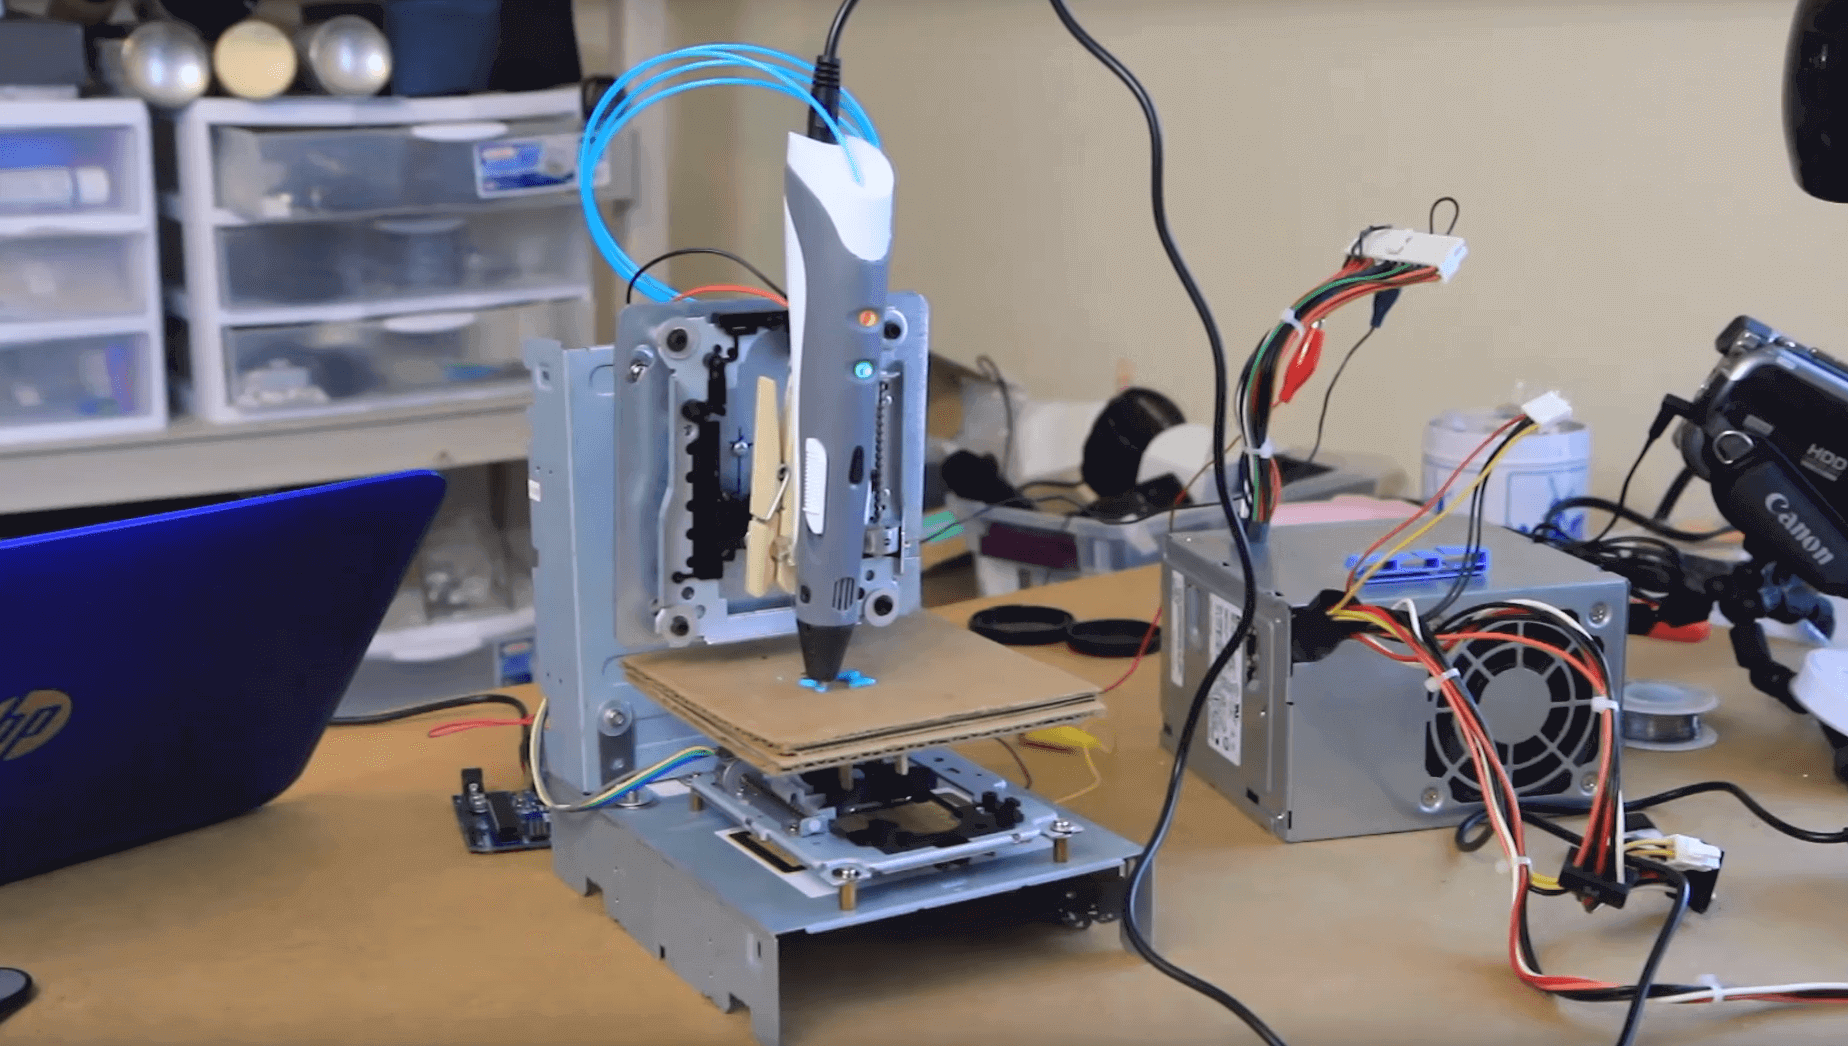 Build a Super Cheap DIY 3D Printer from Old CD-ROM Drives | All3DP